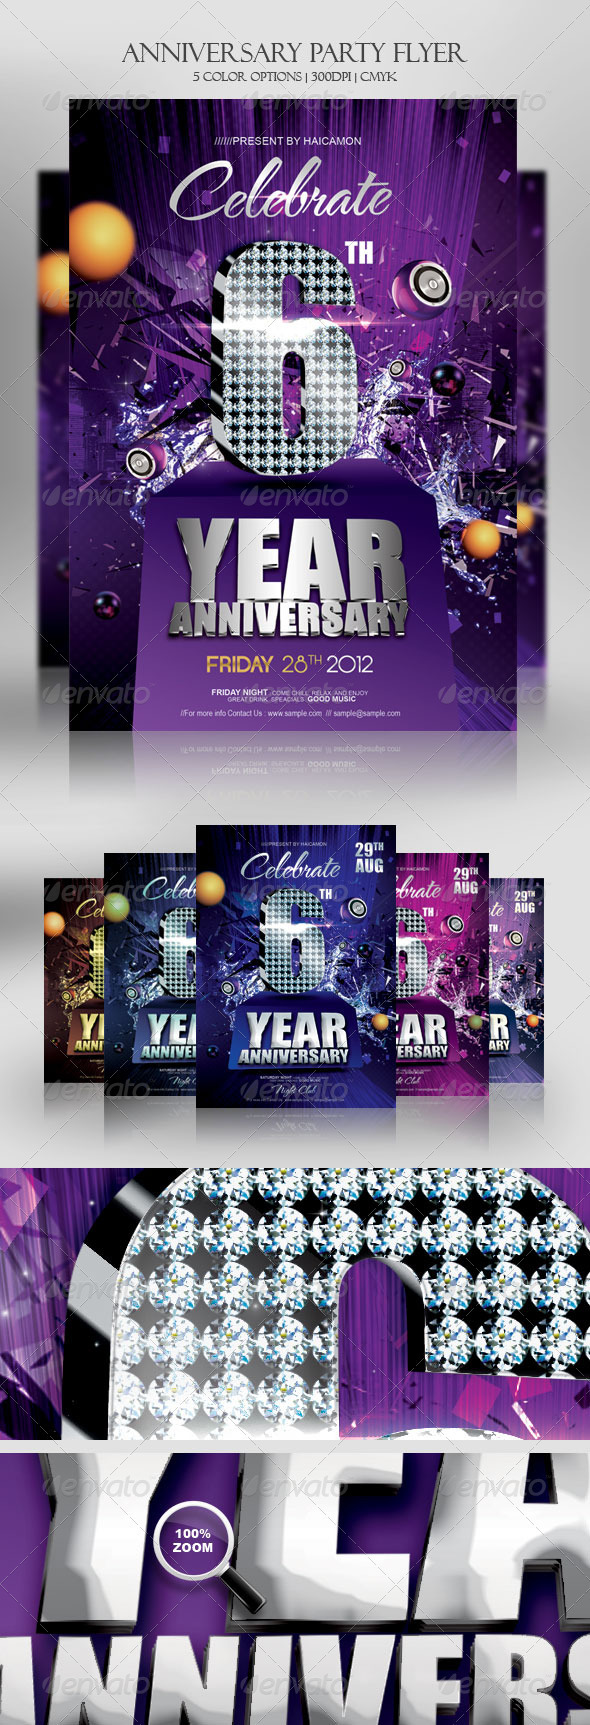 GraphicRiver Anniversary Party Invitations Flyer 2856124